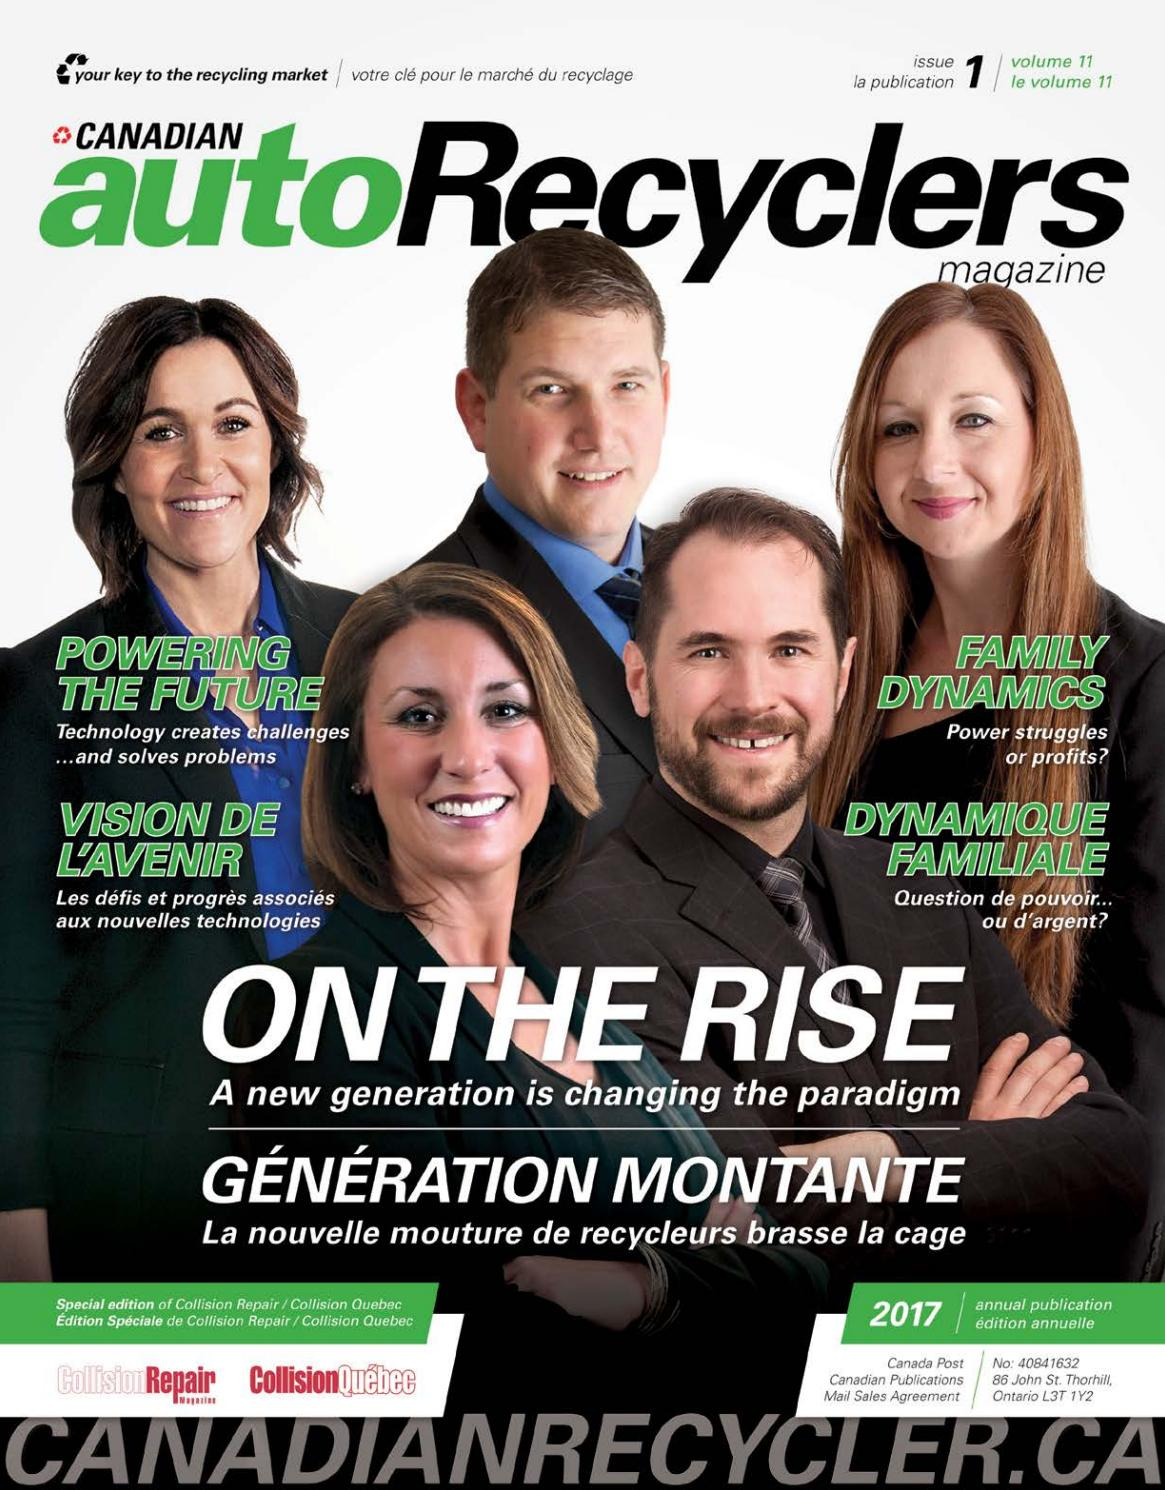 41 Ans Mes Vacances Sans Mon Mari Canadian Auto Recyclers 11 1 By Media Matters Issuu